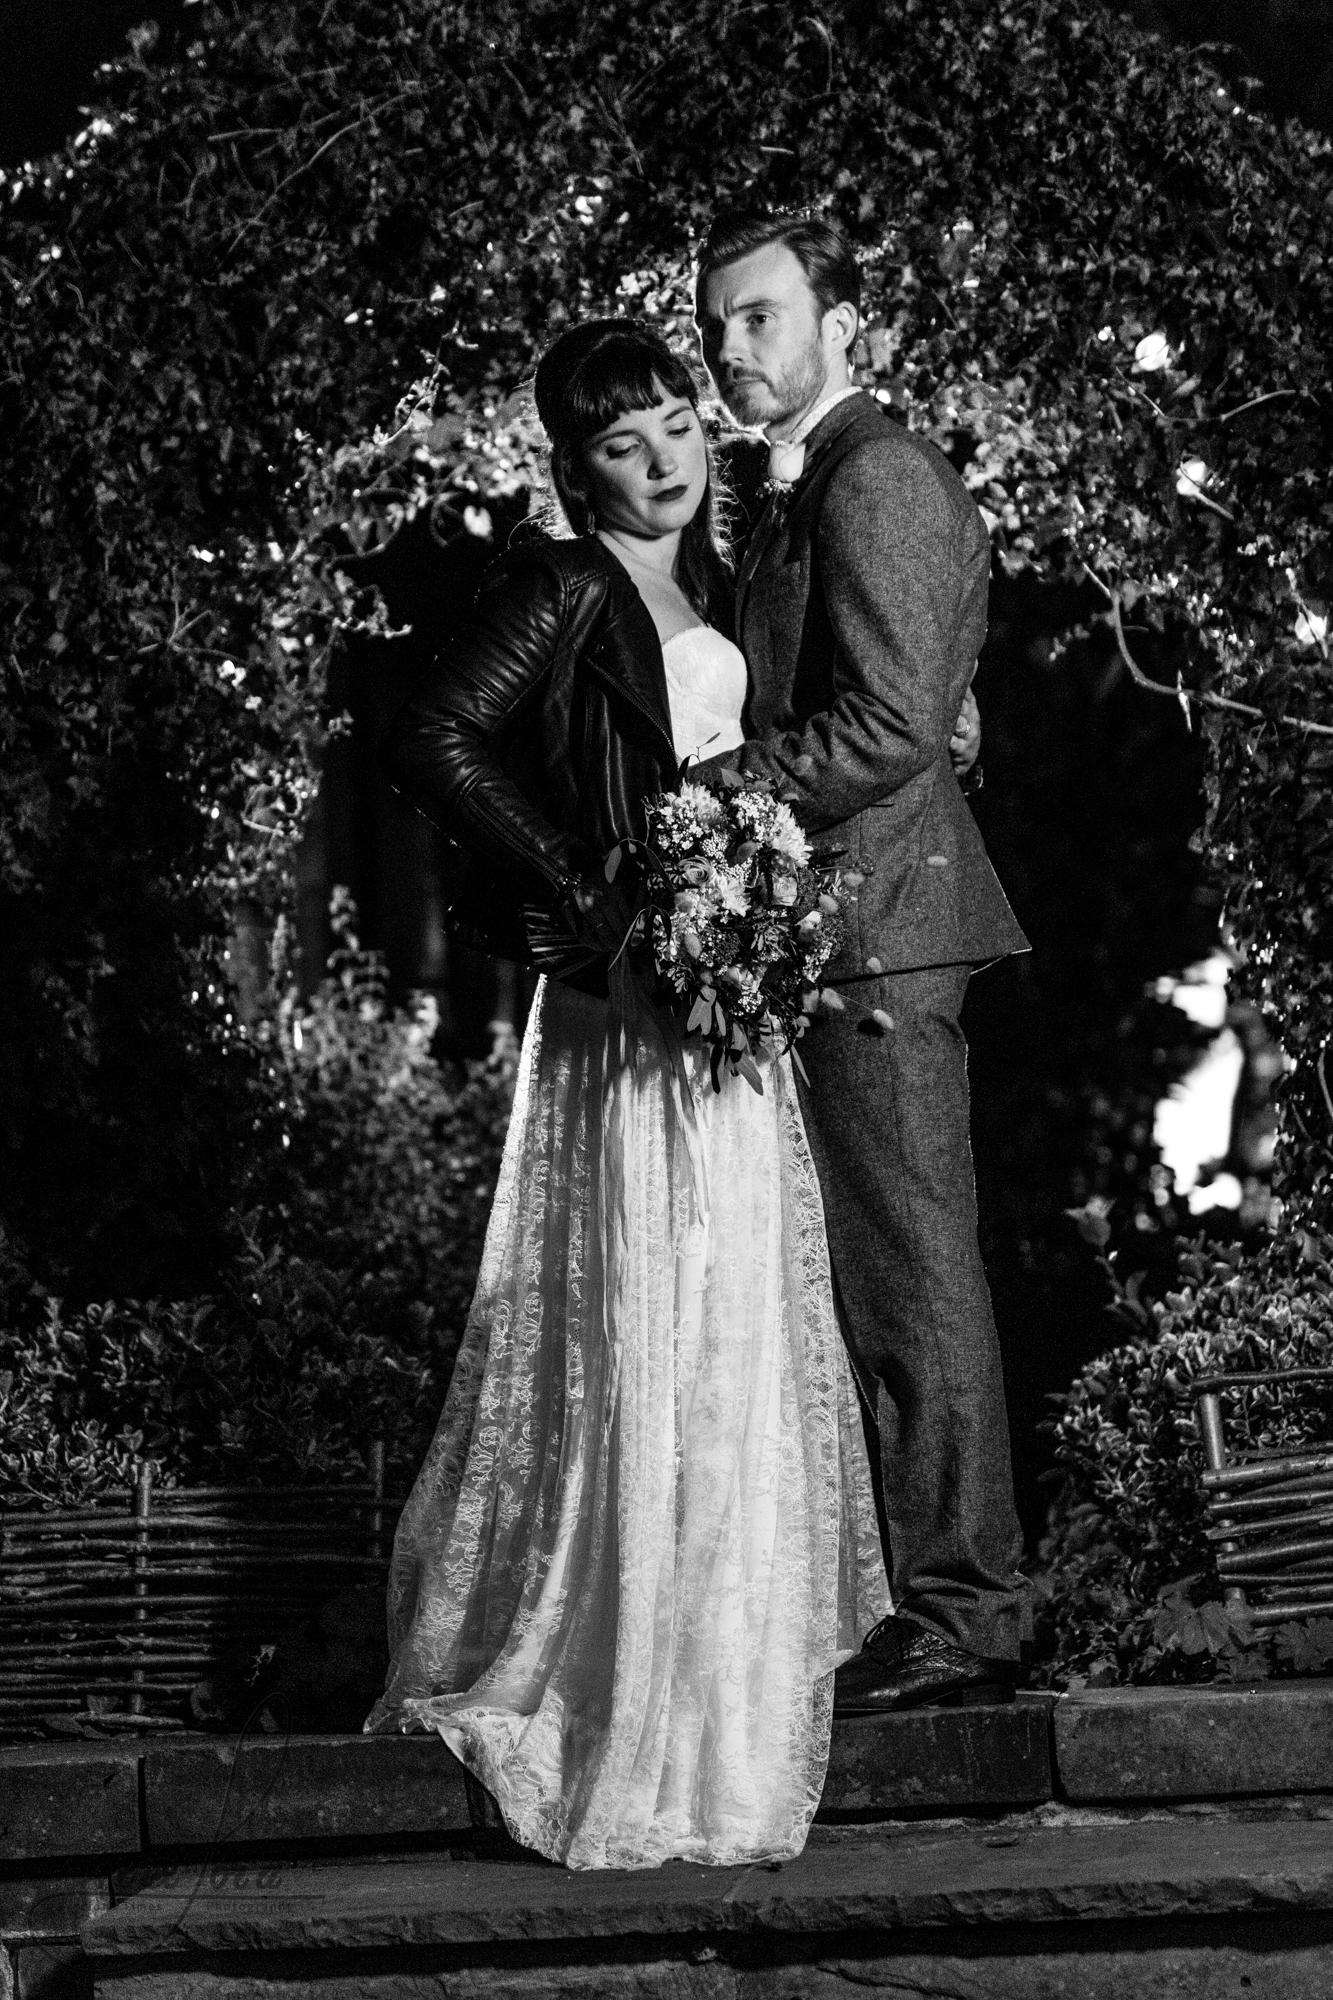 black and white photo of the wedding couple standing outside for their photo shoot